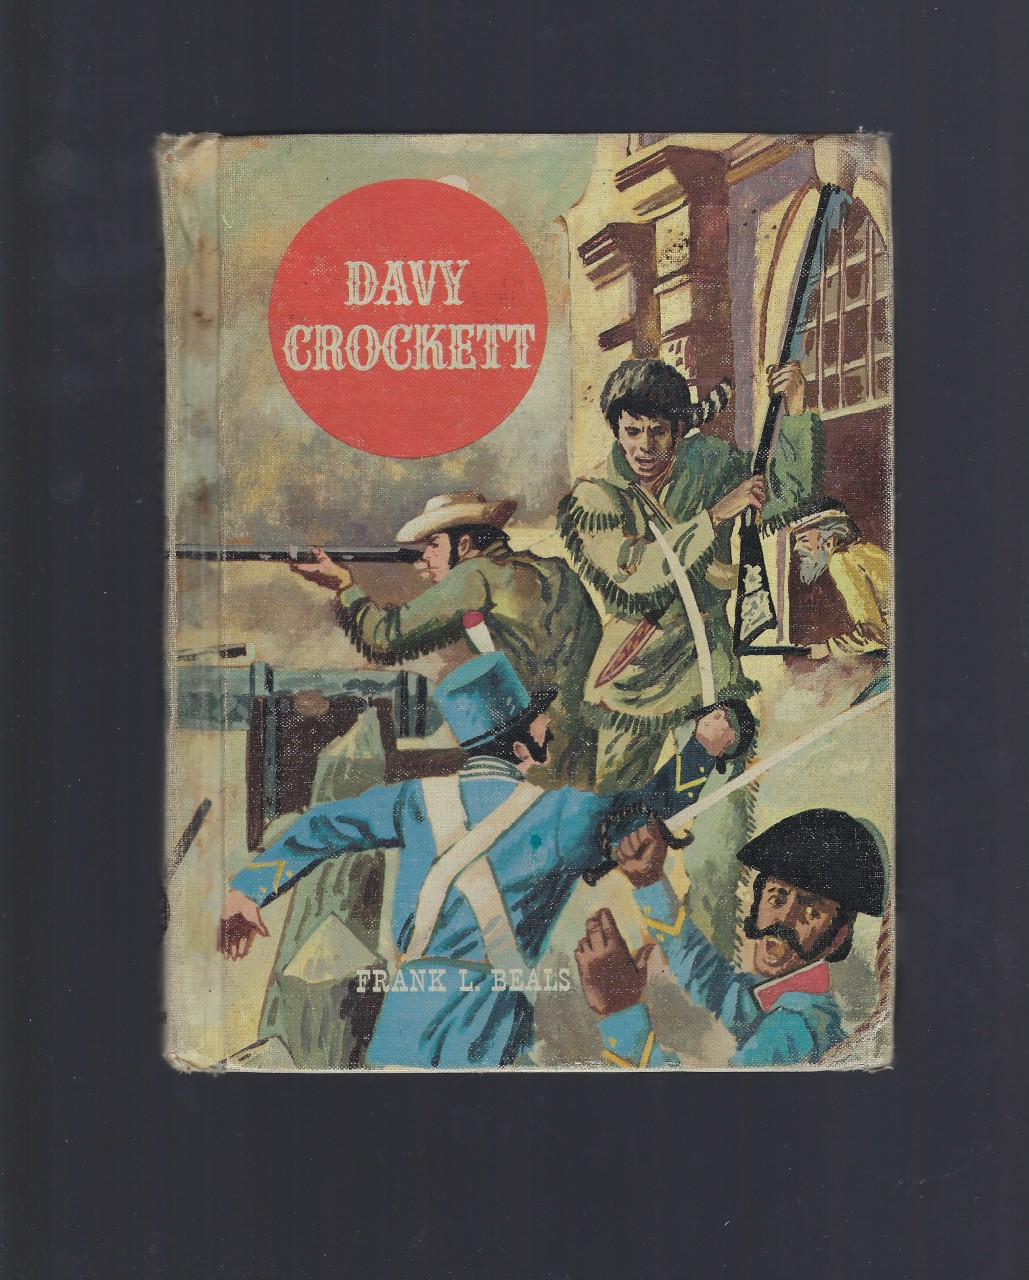 Image for Davy Crockett American Adventure Series 1960